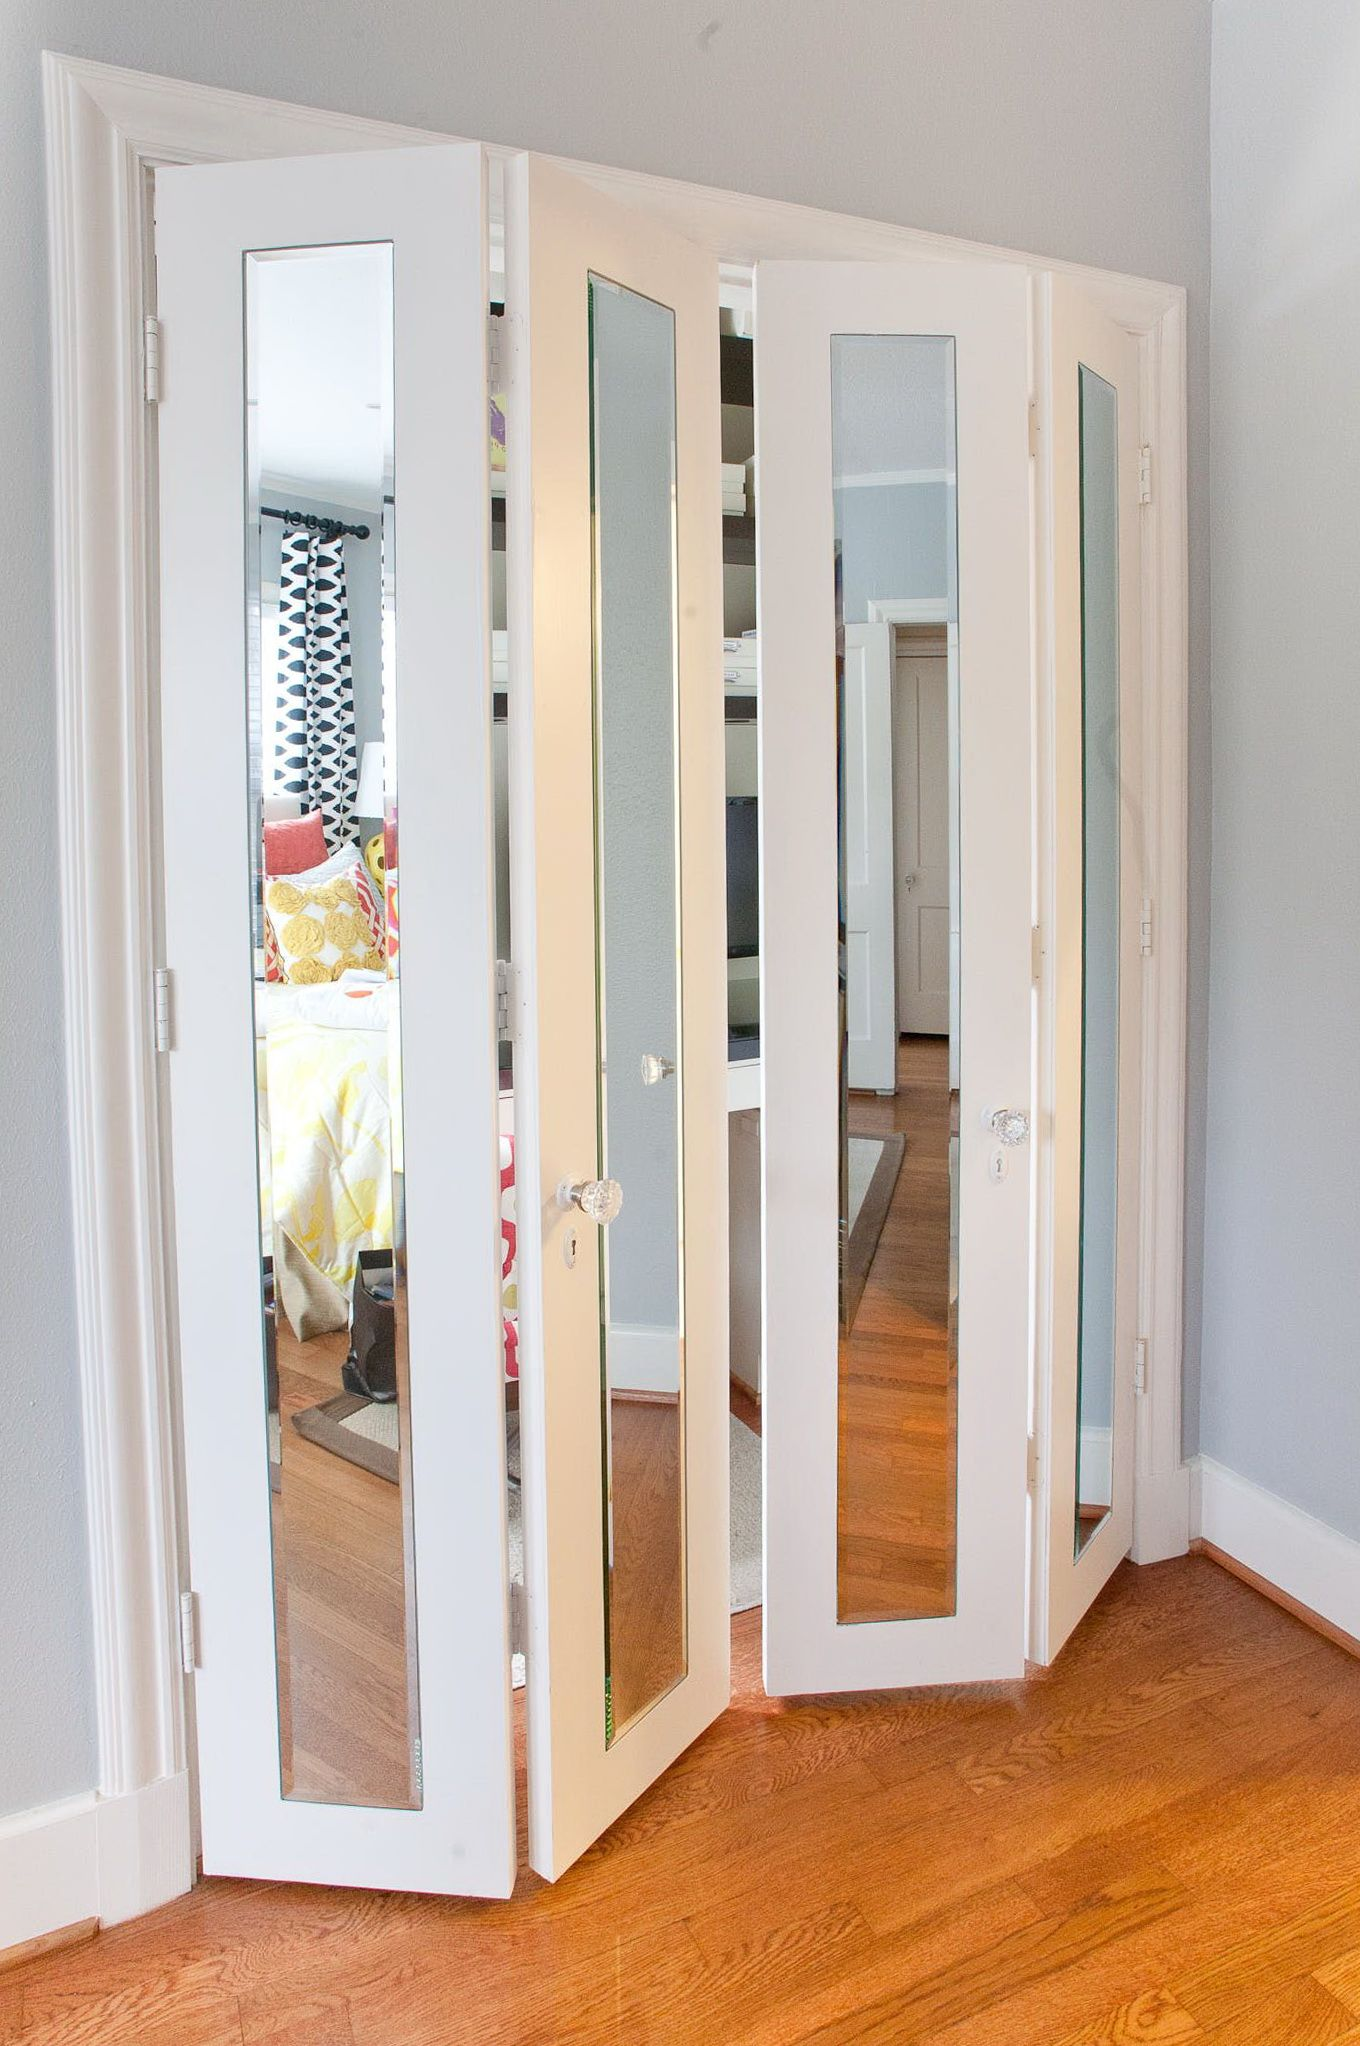 Awesome Stanley Mirrored Sliding Closet. Stanley Mirrored Sliding Closet Doors E